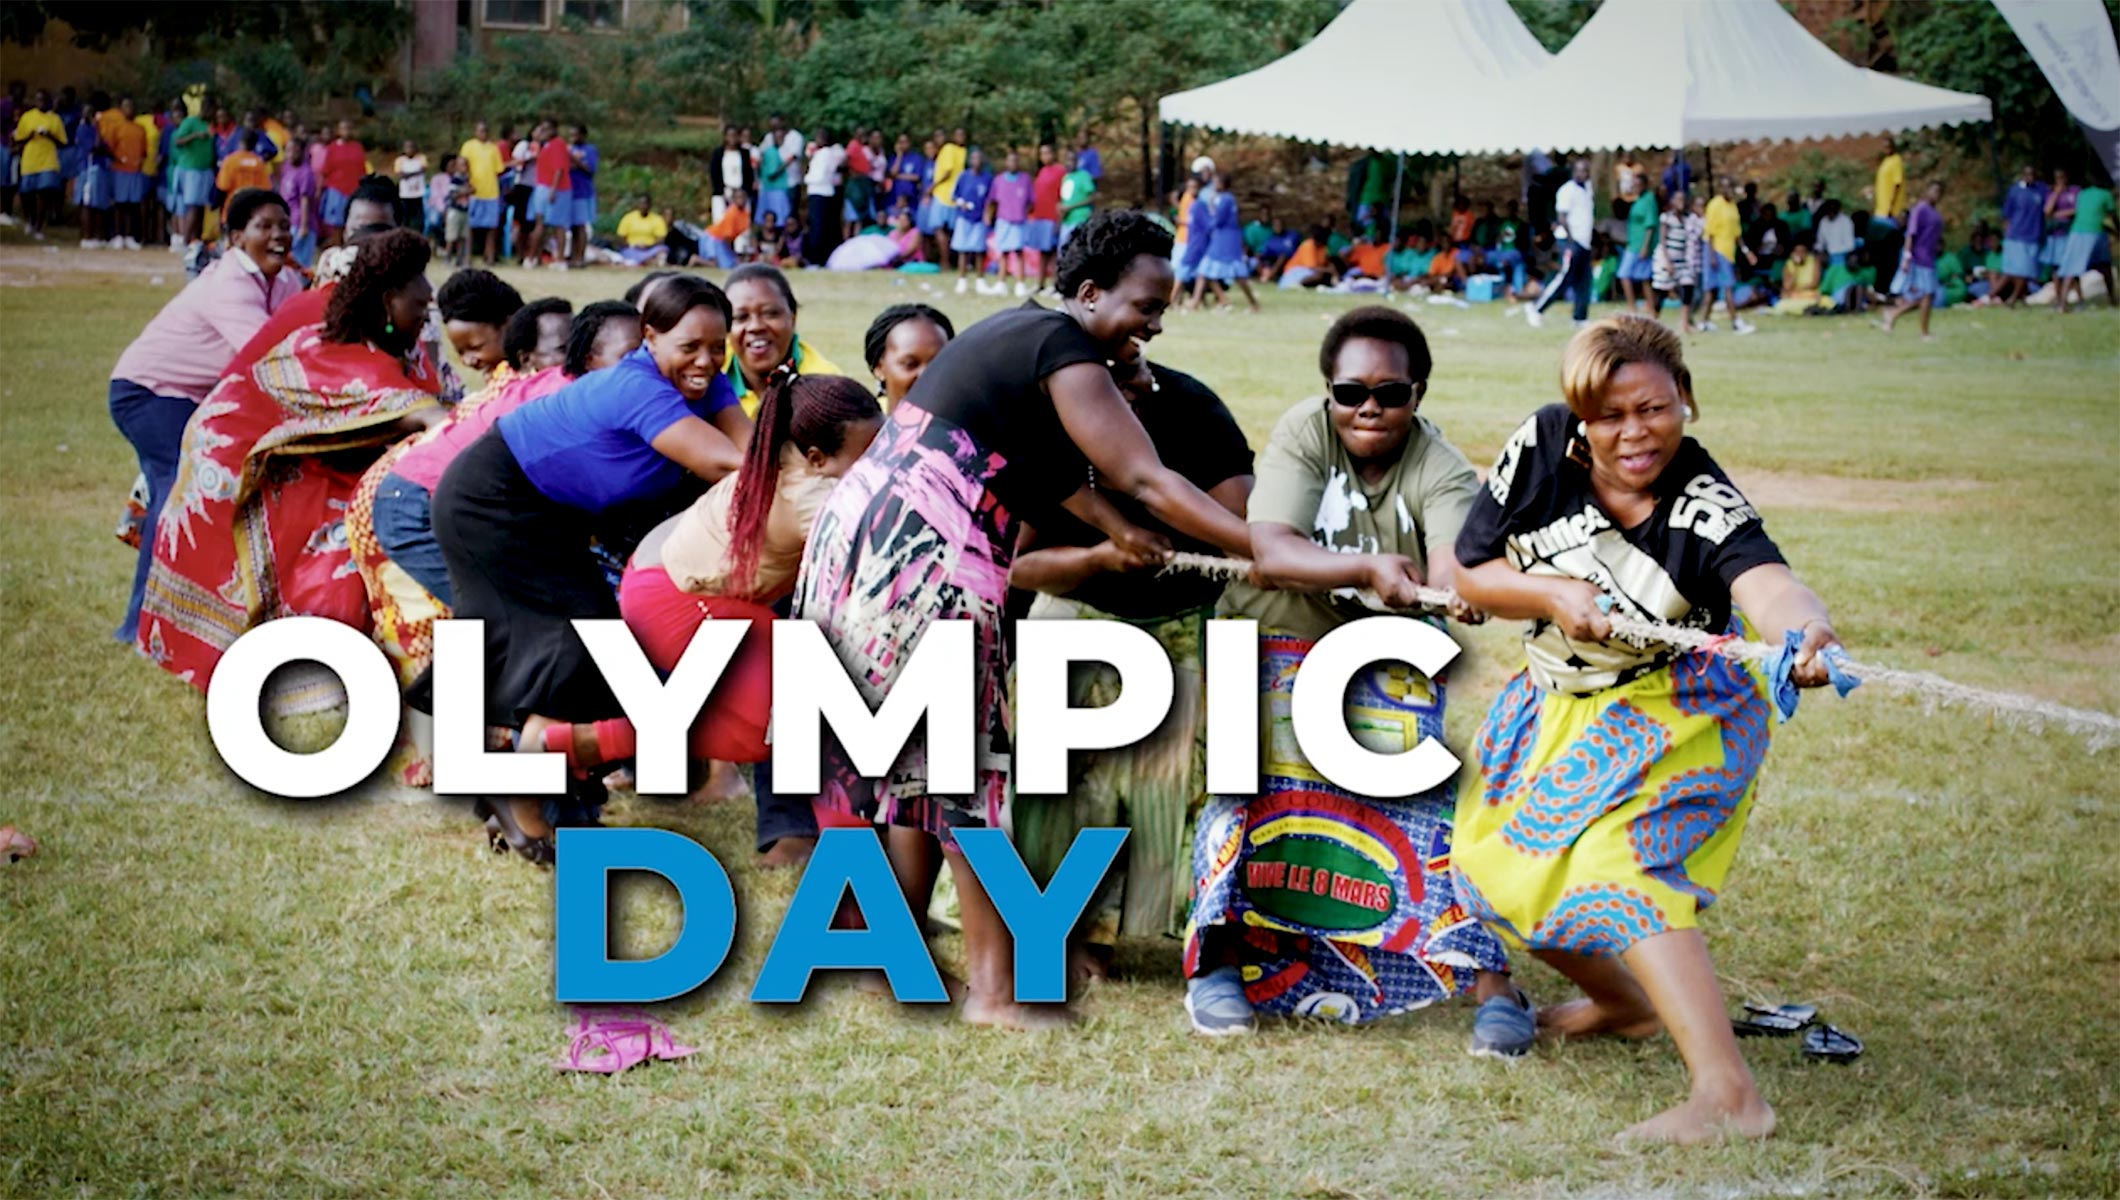 Olympic Day - Celebrate Getting Active and Living the